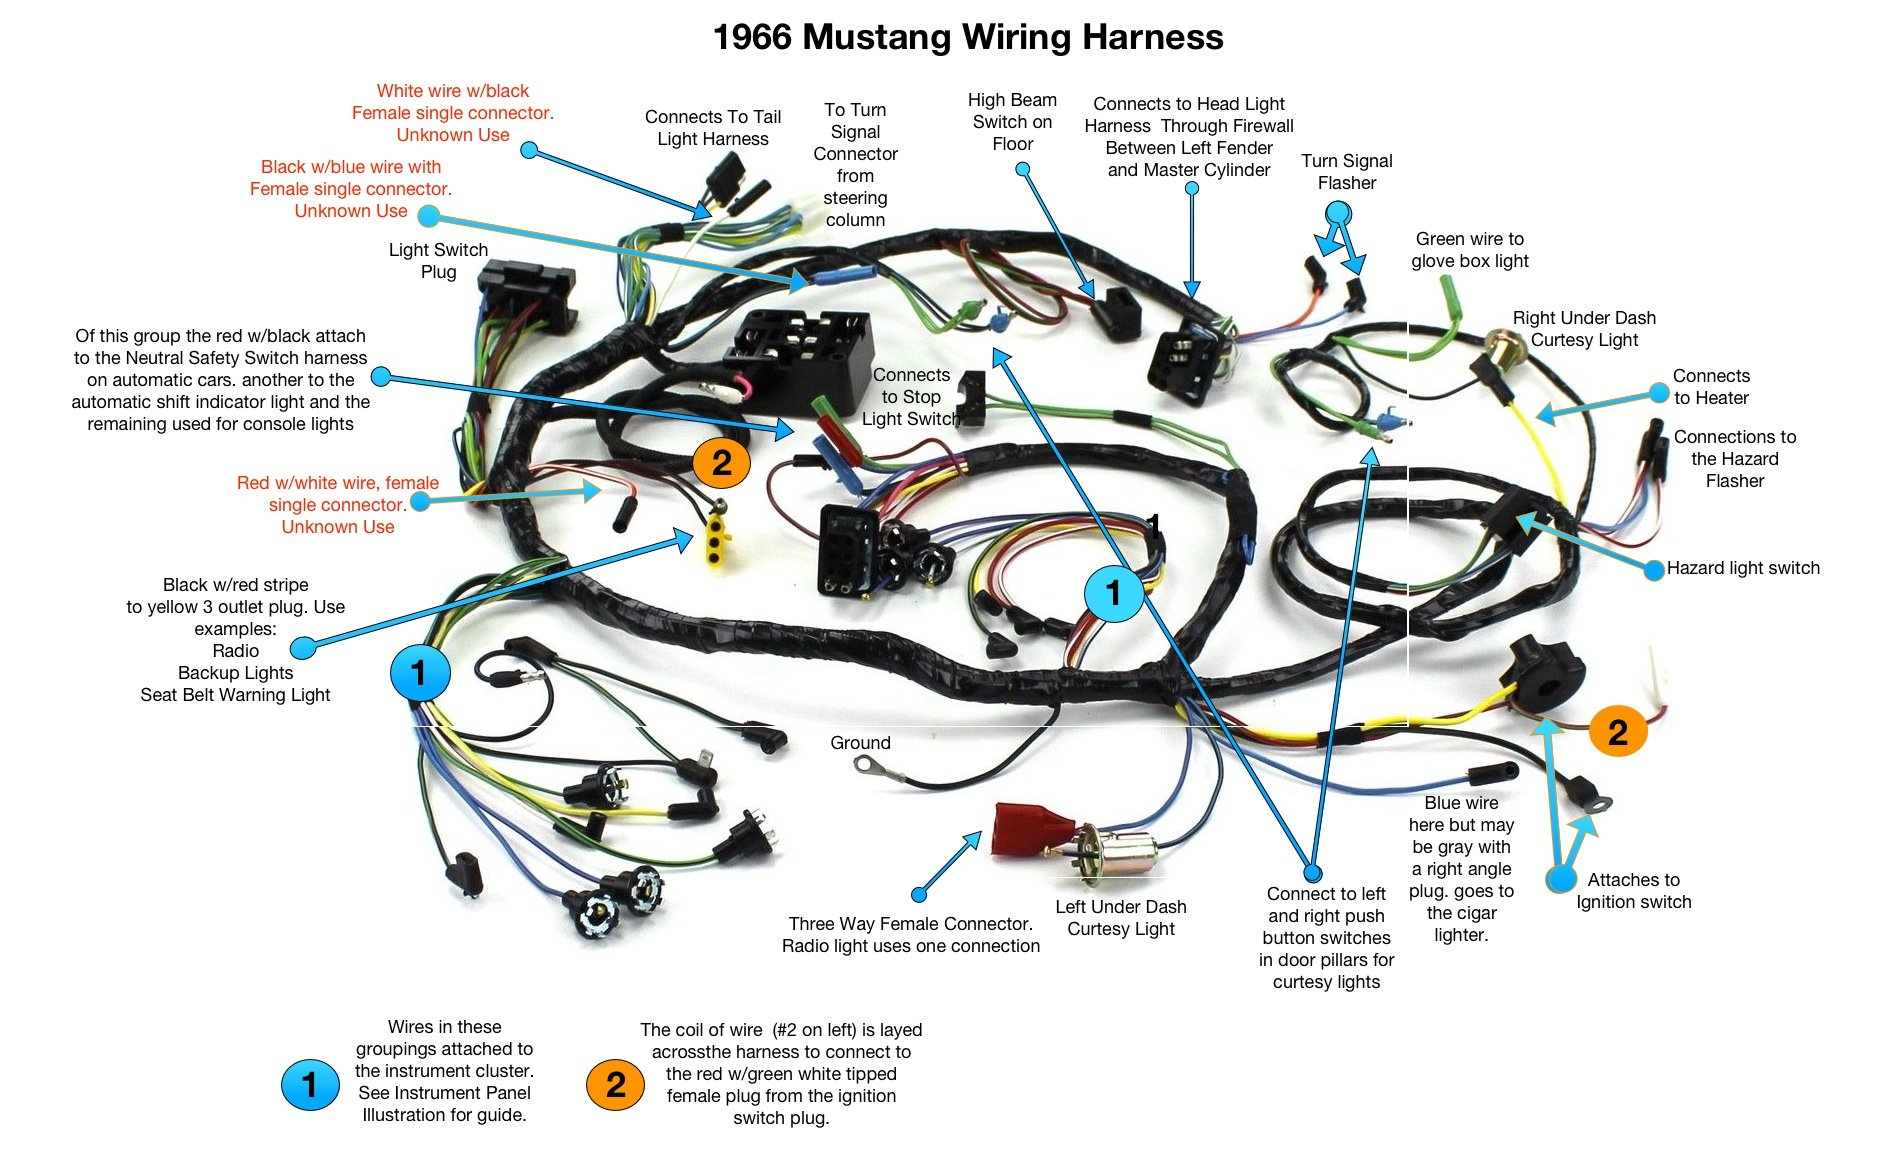 66 Wiring Harness Diagram Ford Mustang Forum Mustang Fog Light Wiring  Harness Mustang Wiring Harness